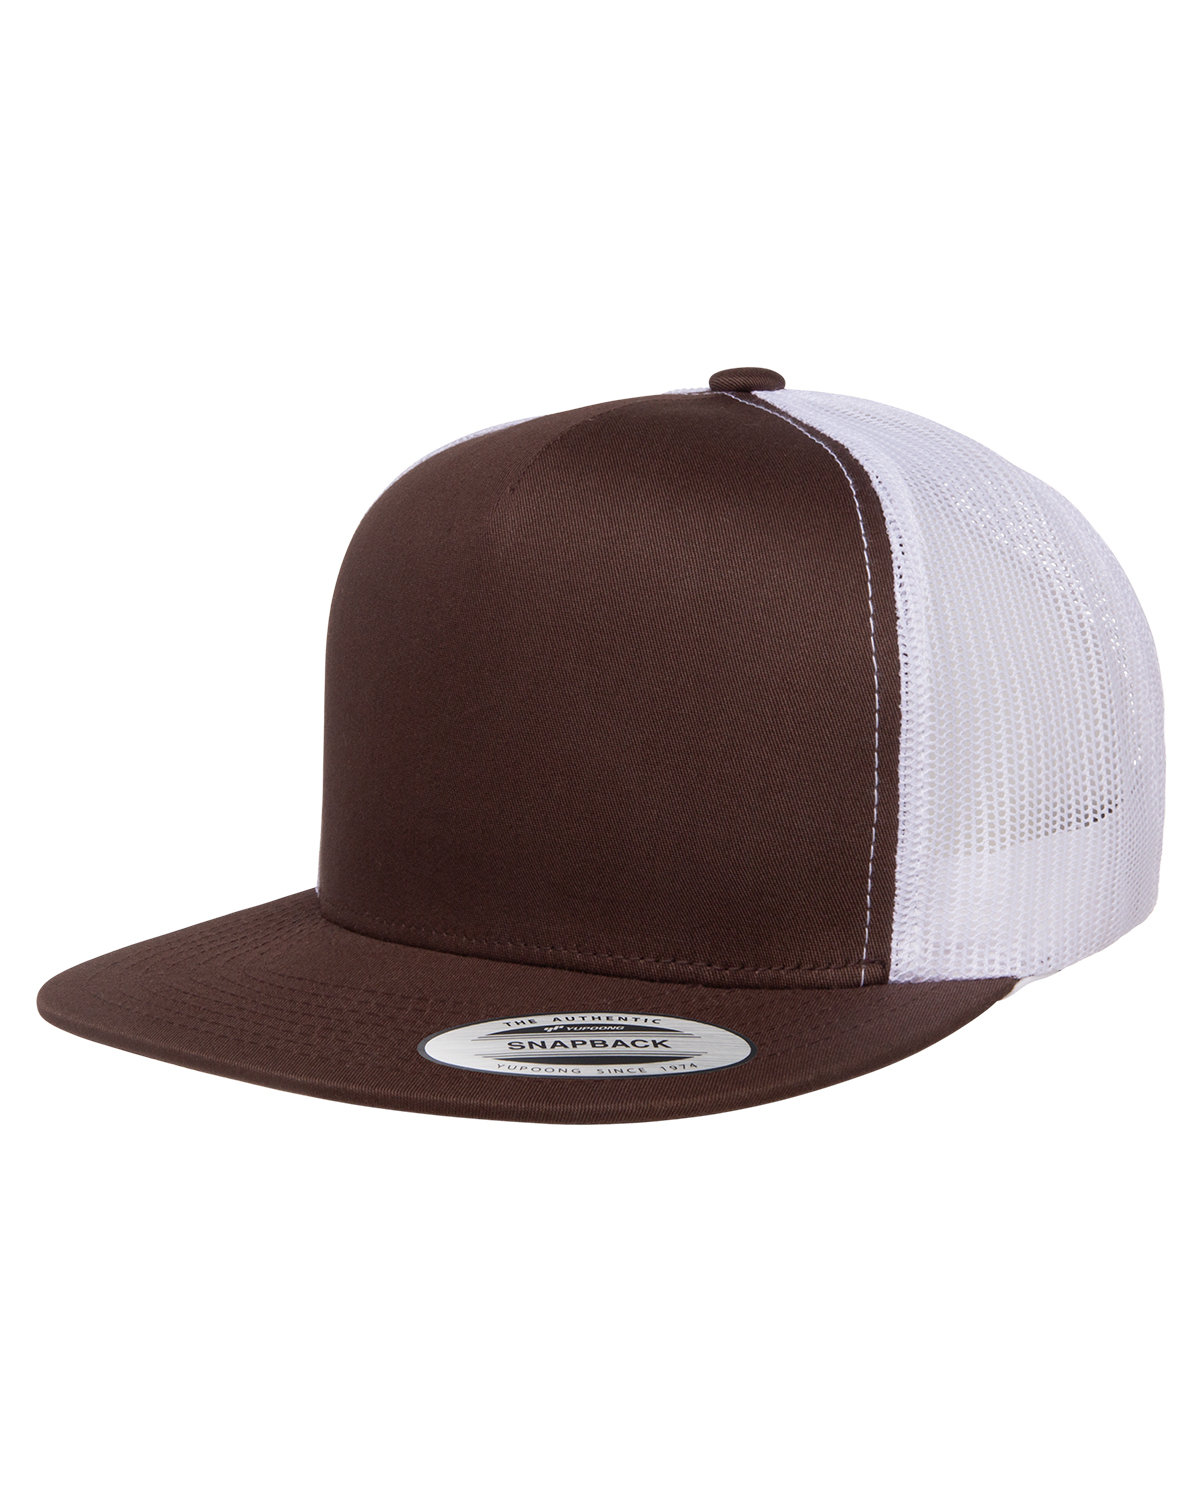 Yupoong Adult 5-Panel Classic Trucker Cap BROWN/ WHITE